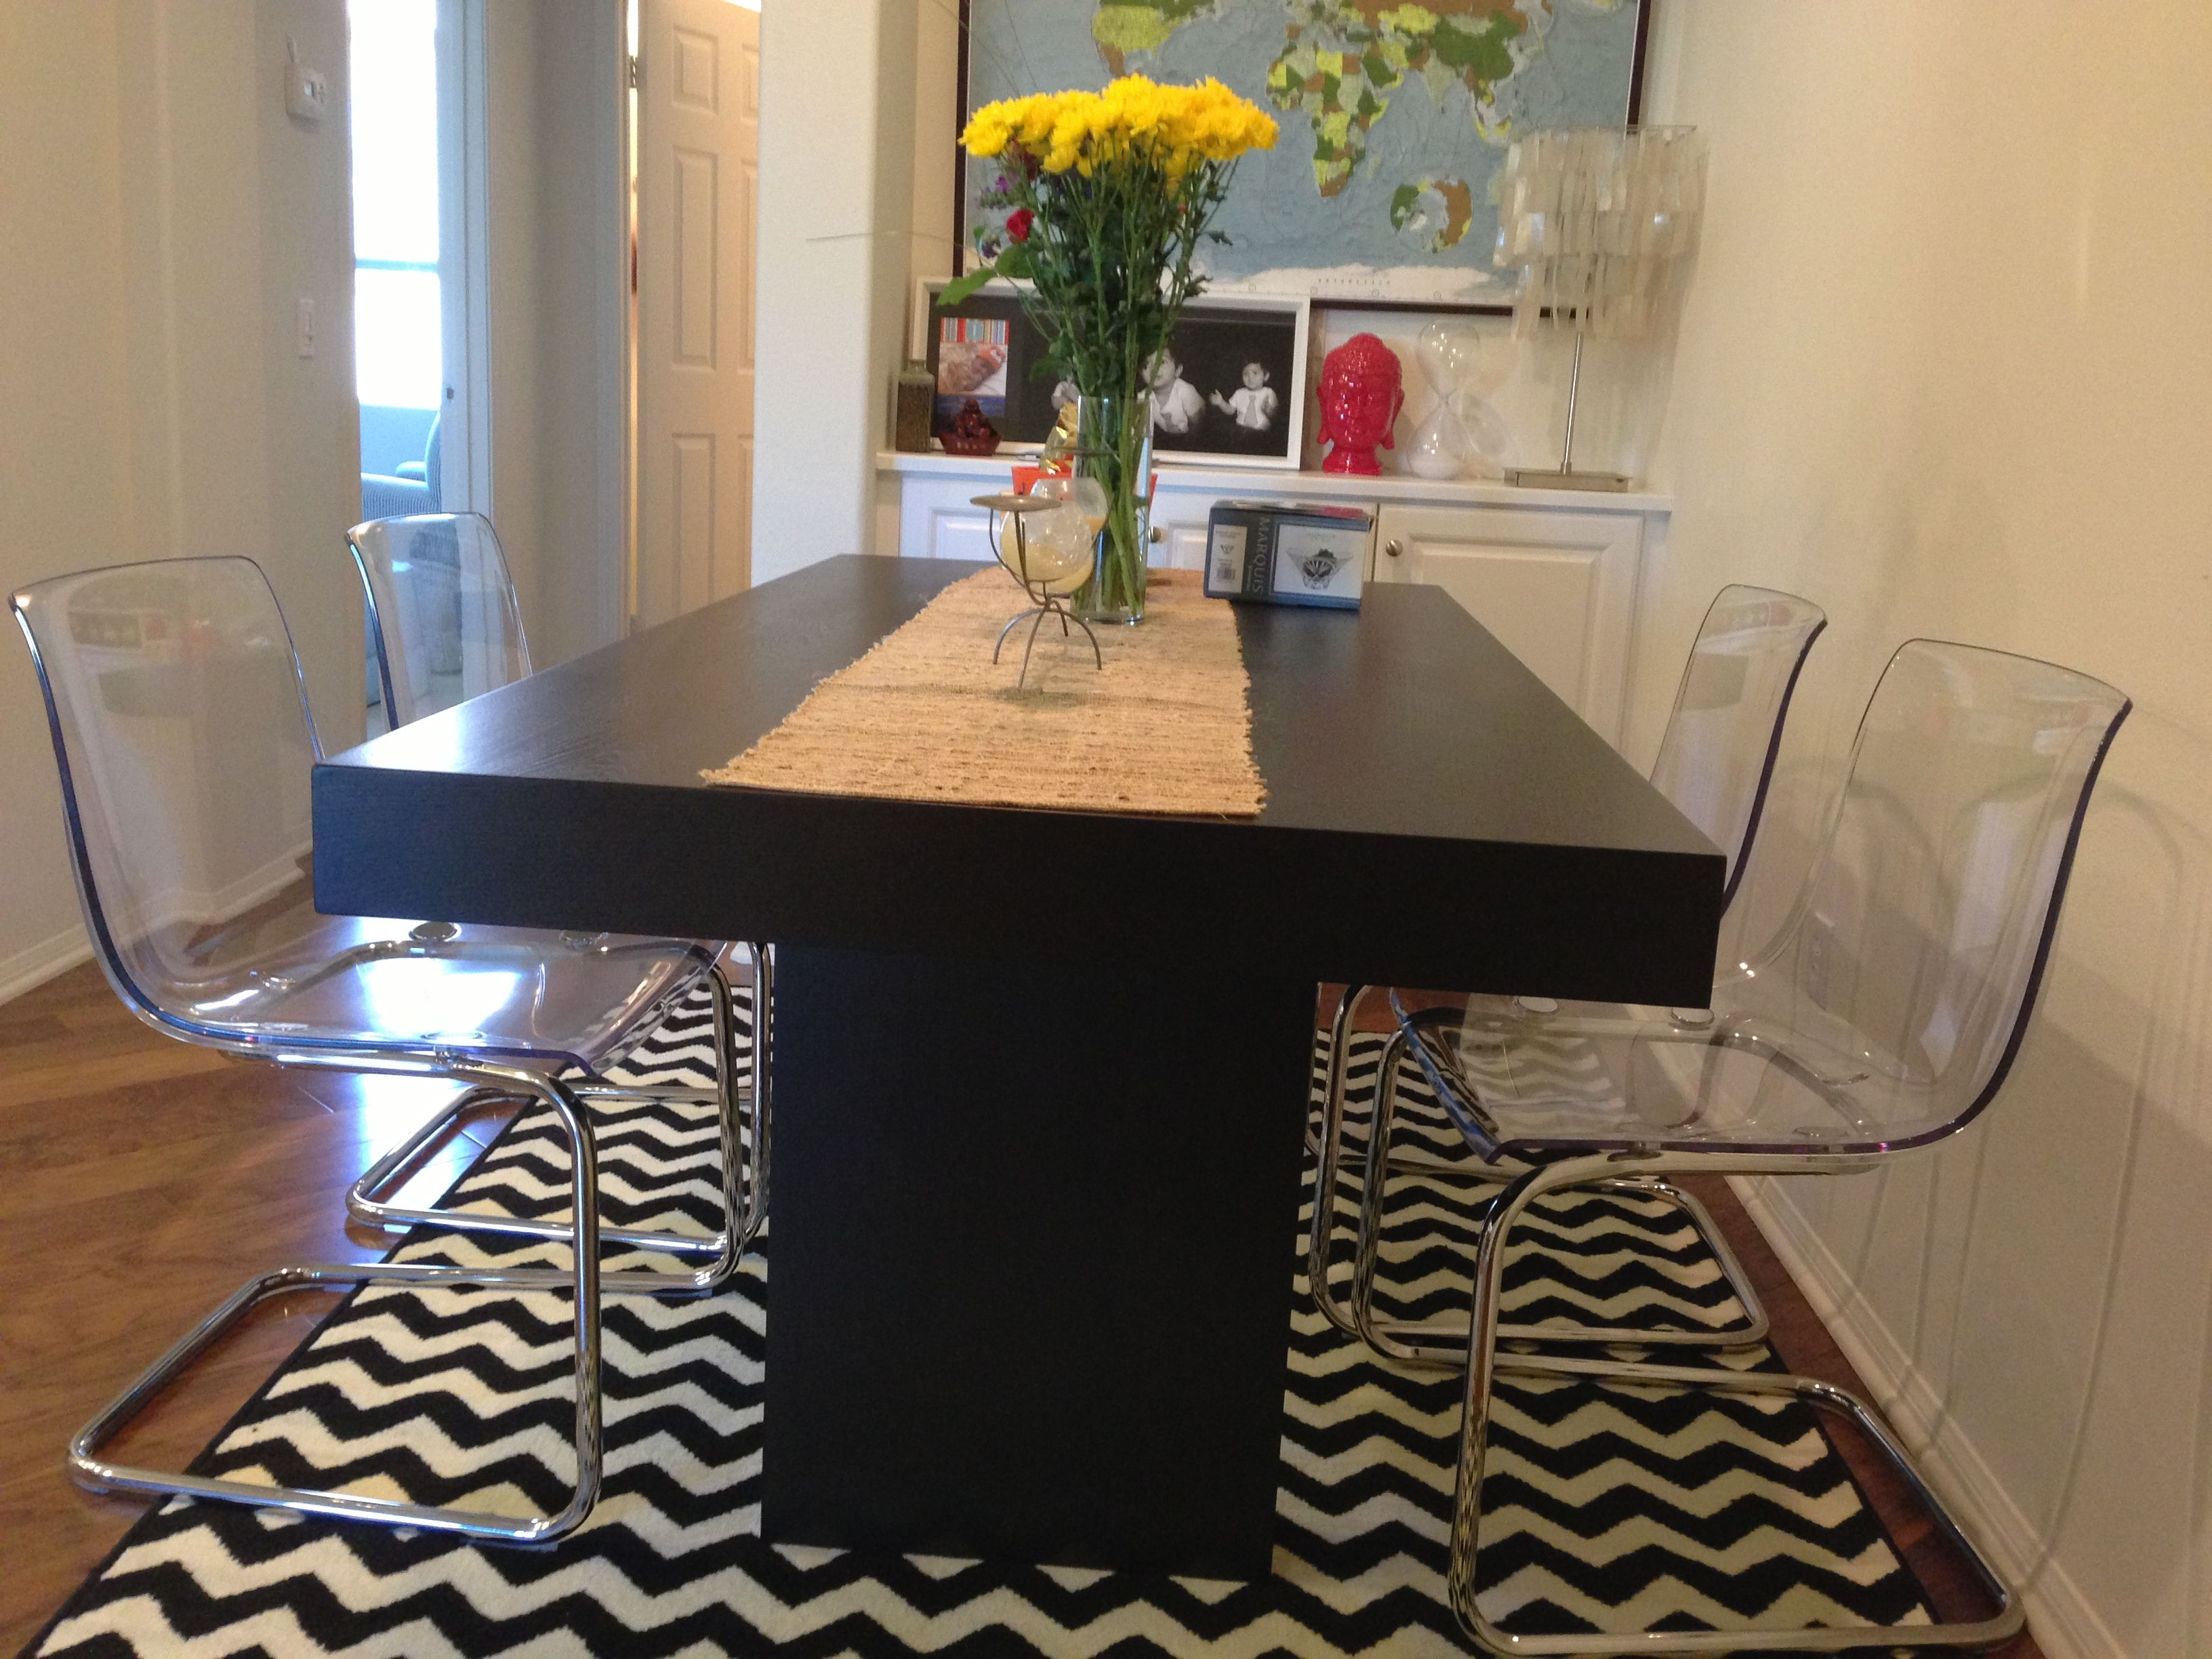 Acrylic Chairs From Ikea And Wooden